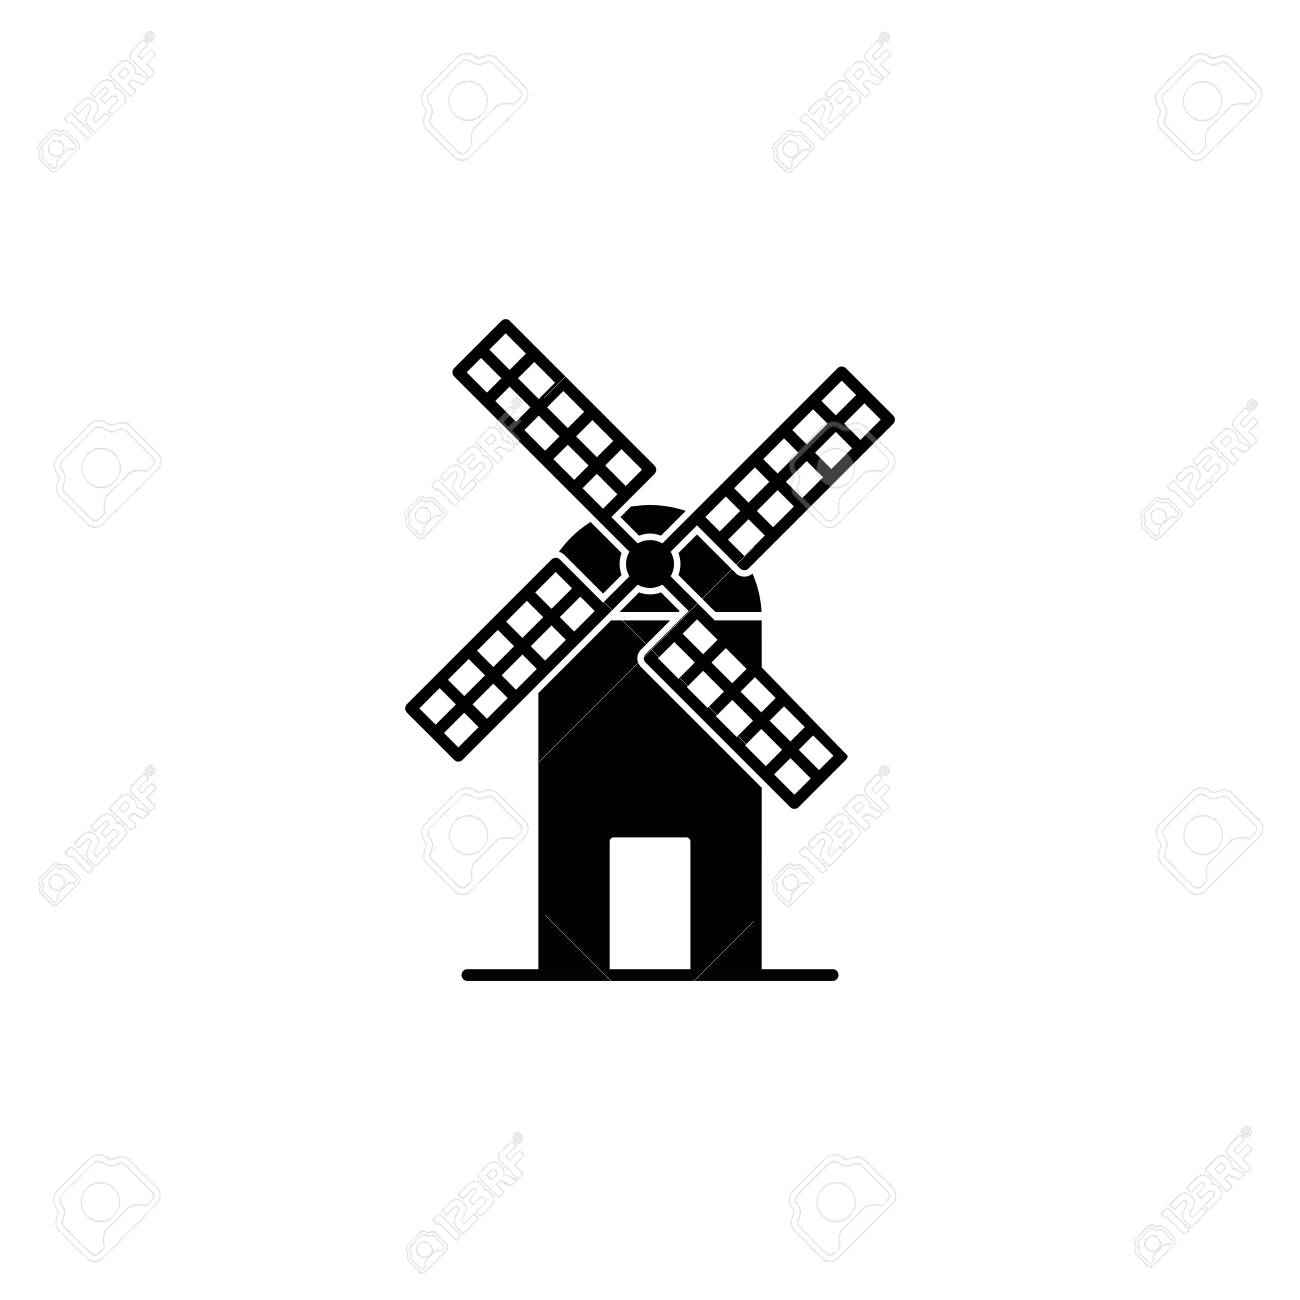 Illustration Vector graphic of Windmill icon template - 153262187